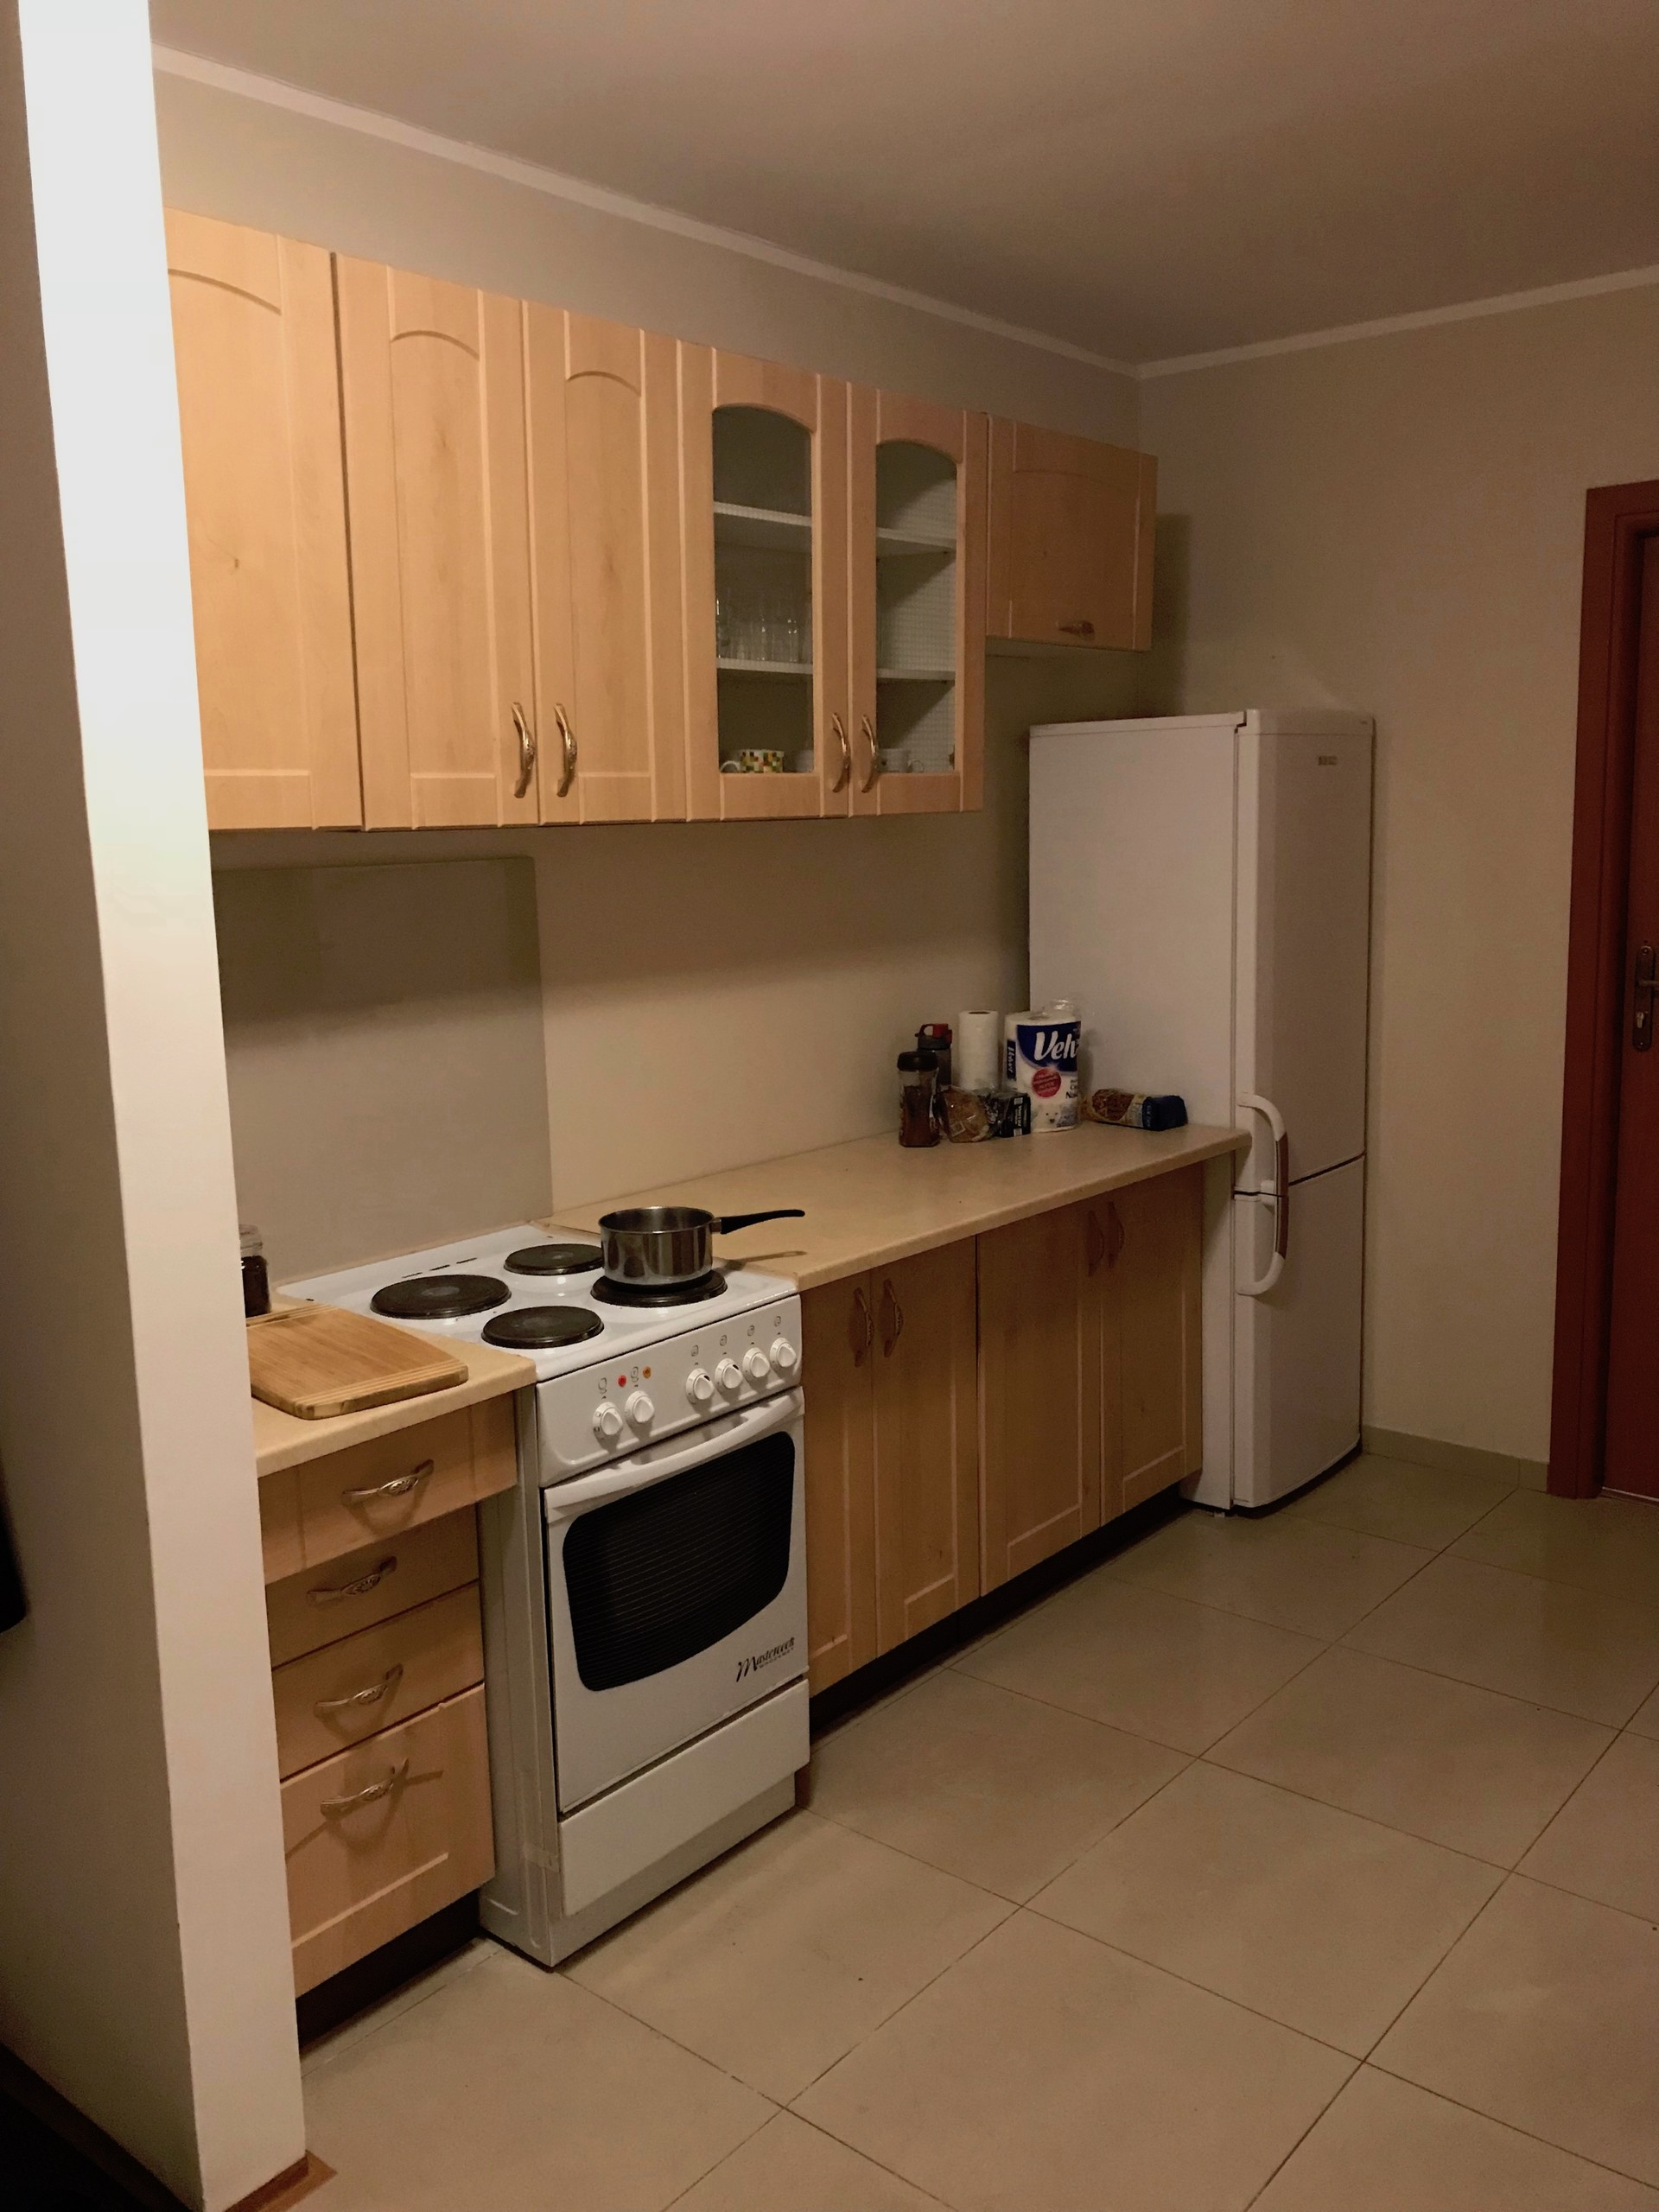 A spacious room 18 m2 less than 400 m from the University of